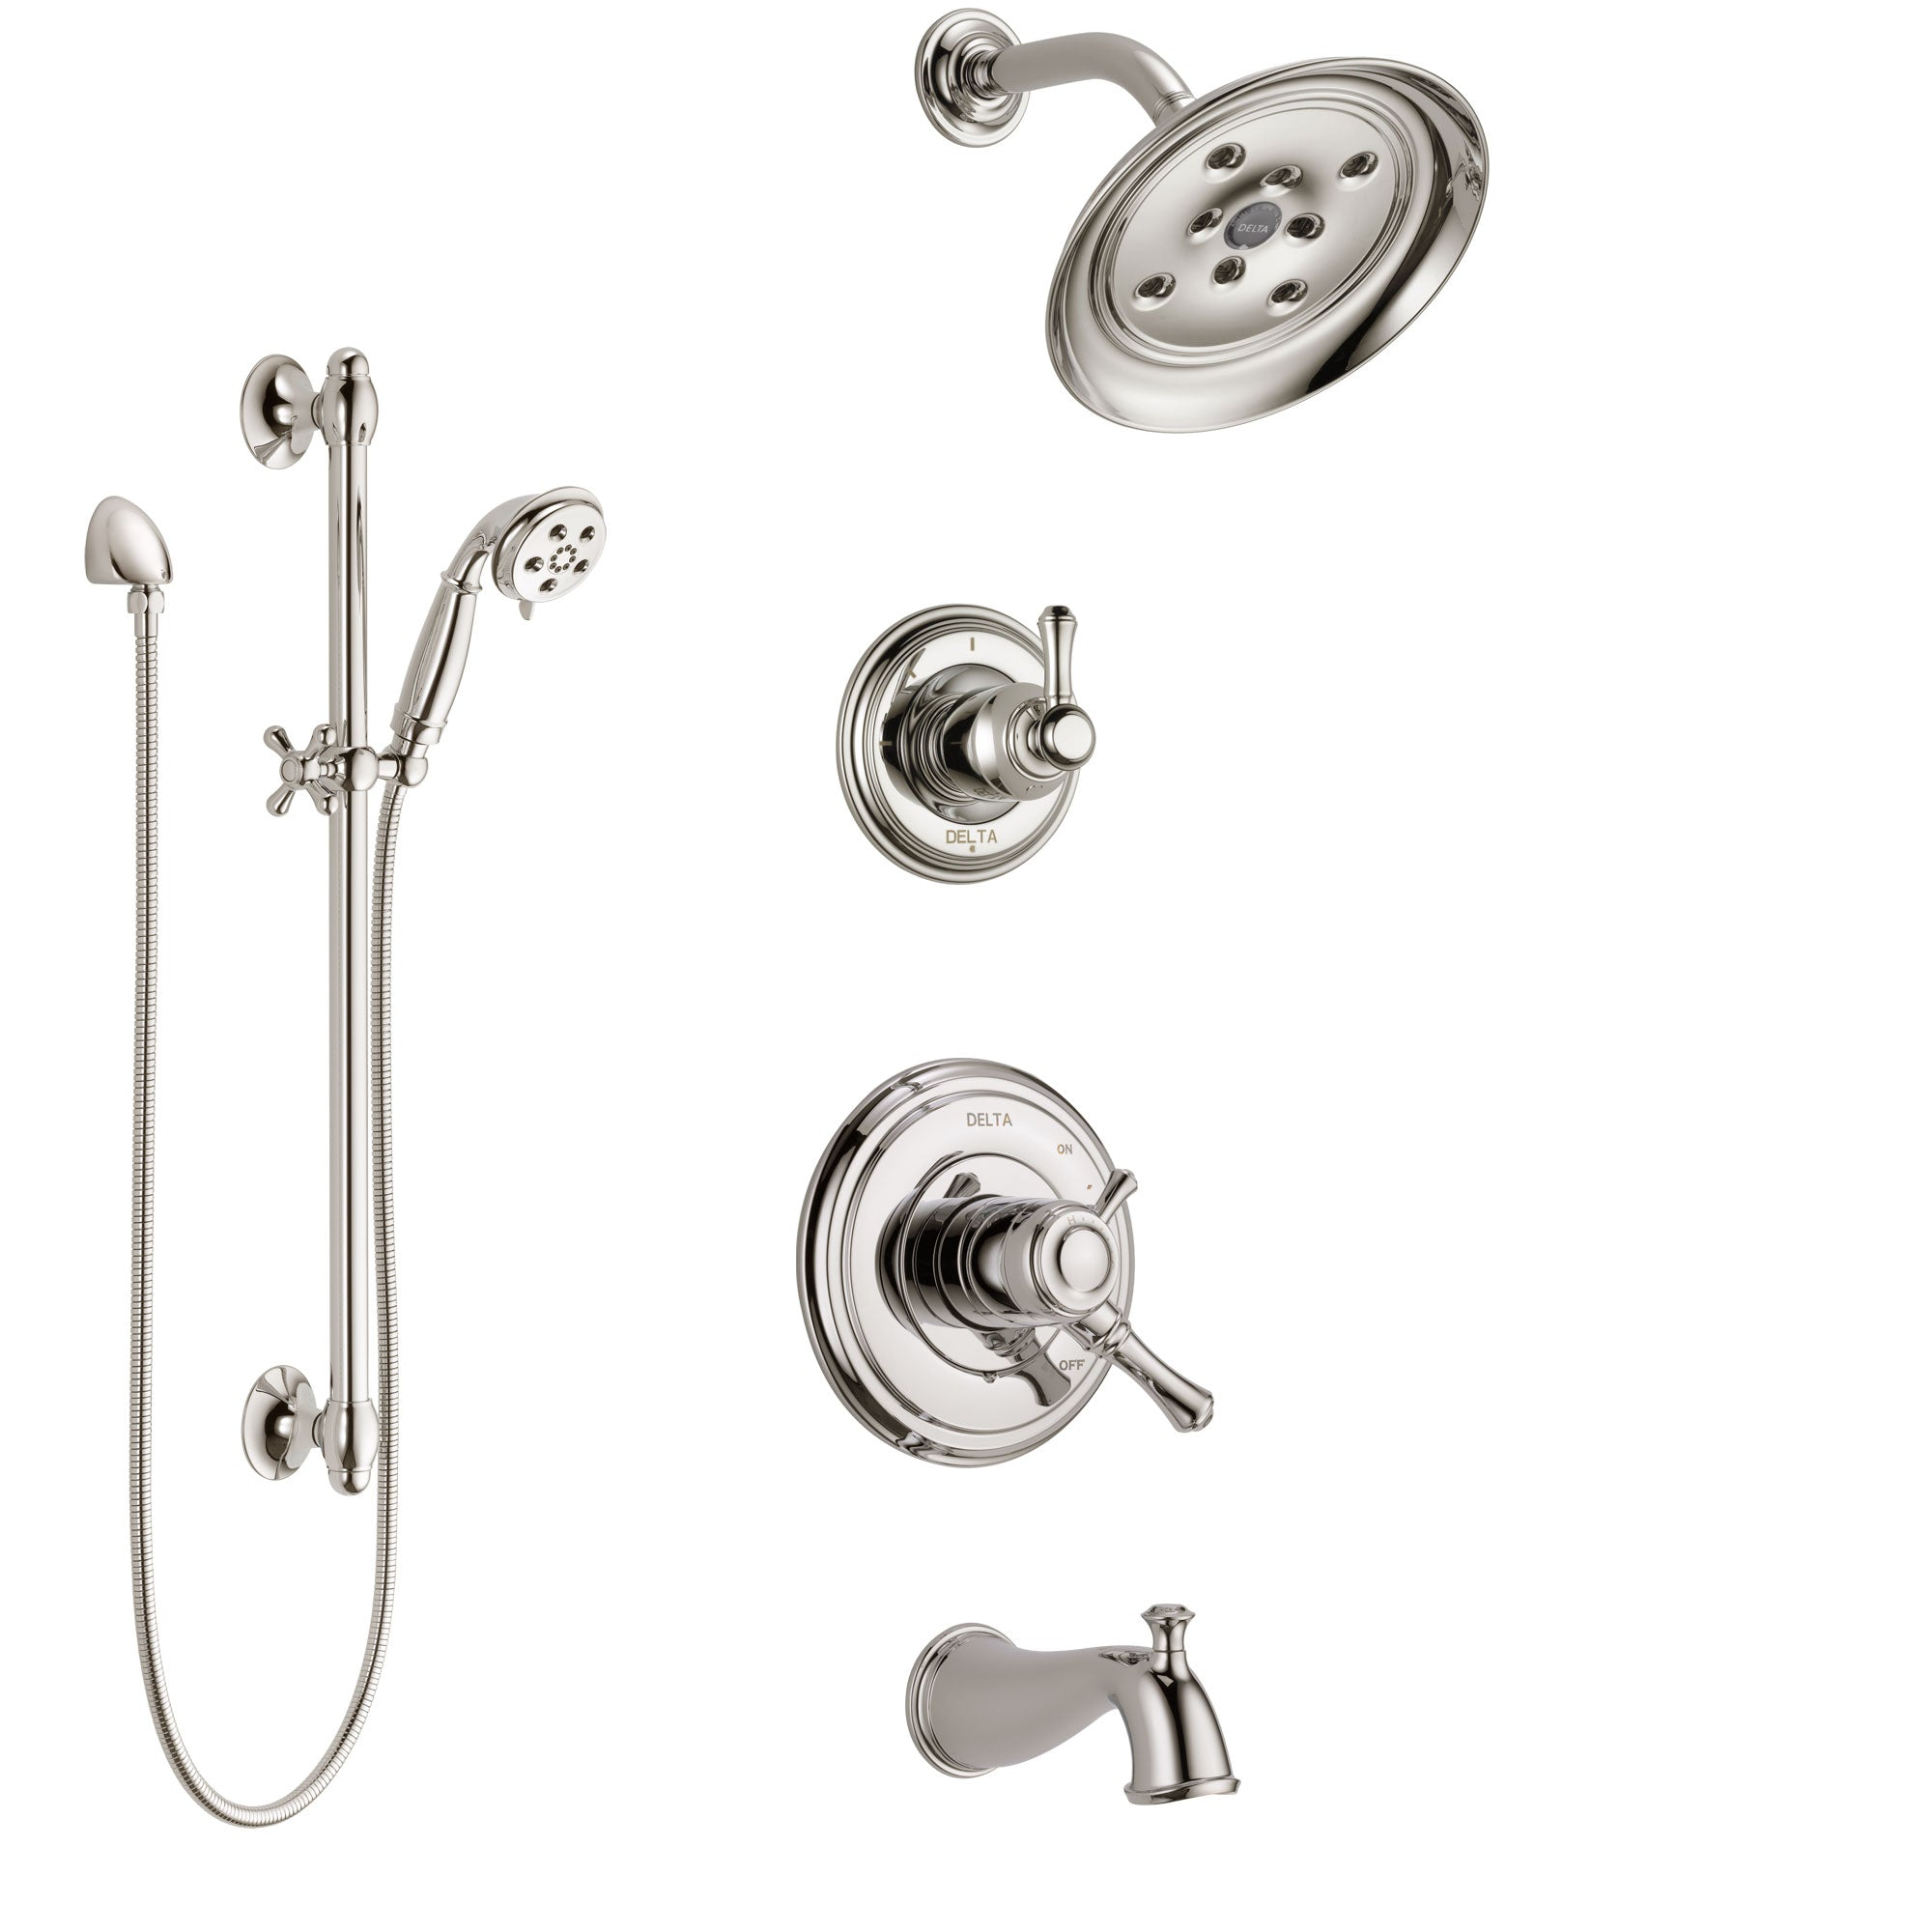 Delta Cassidy Polished Nickel Tub and Shower System with Dual Control Handle, 3-Setting Diverter, Showerhead, and Hand Shower with Slidebar SS17497PN2